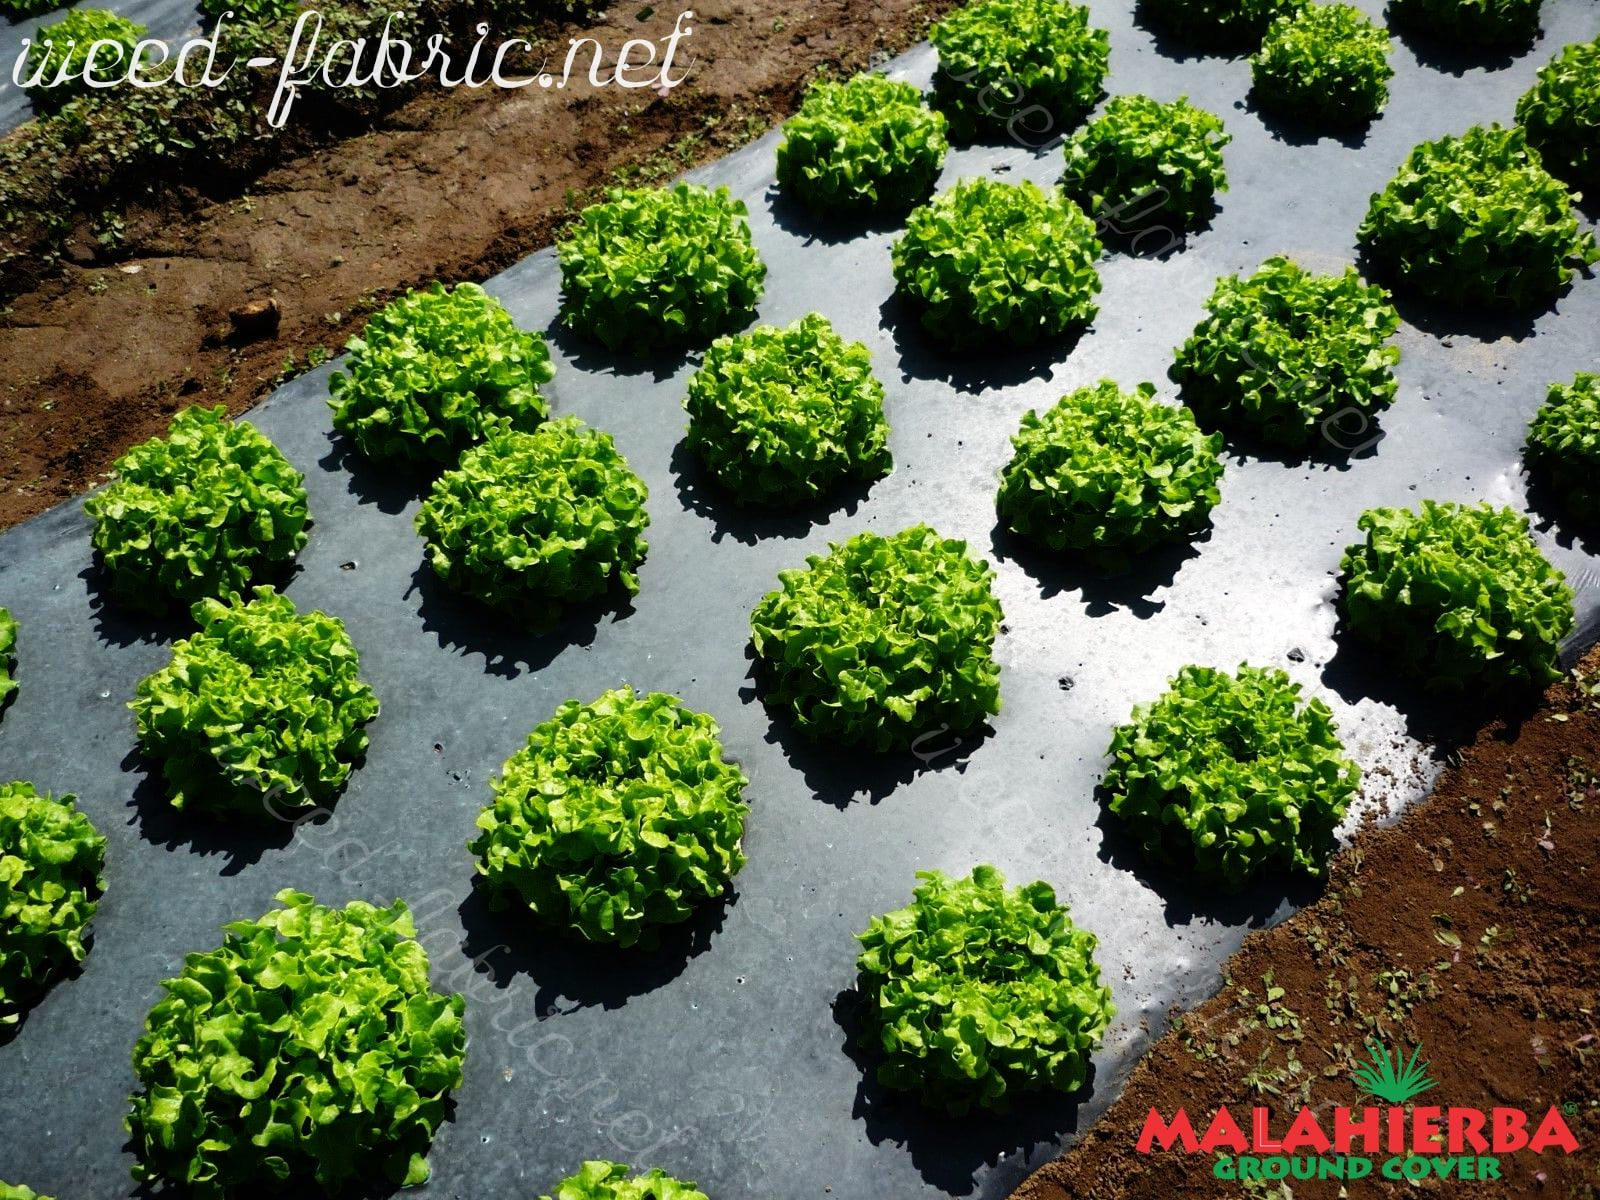 crops using the ground cover.